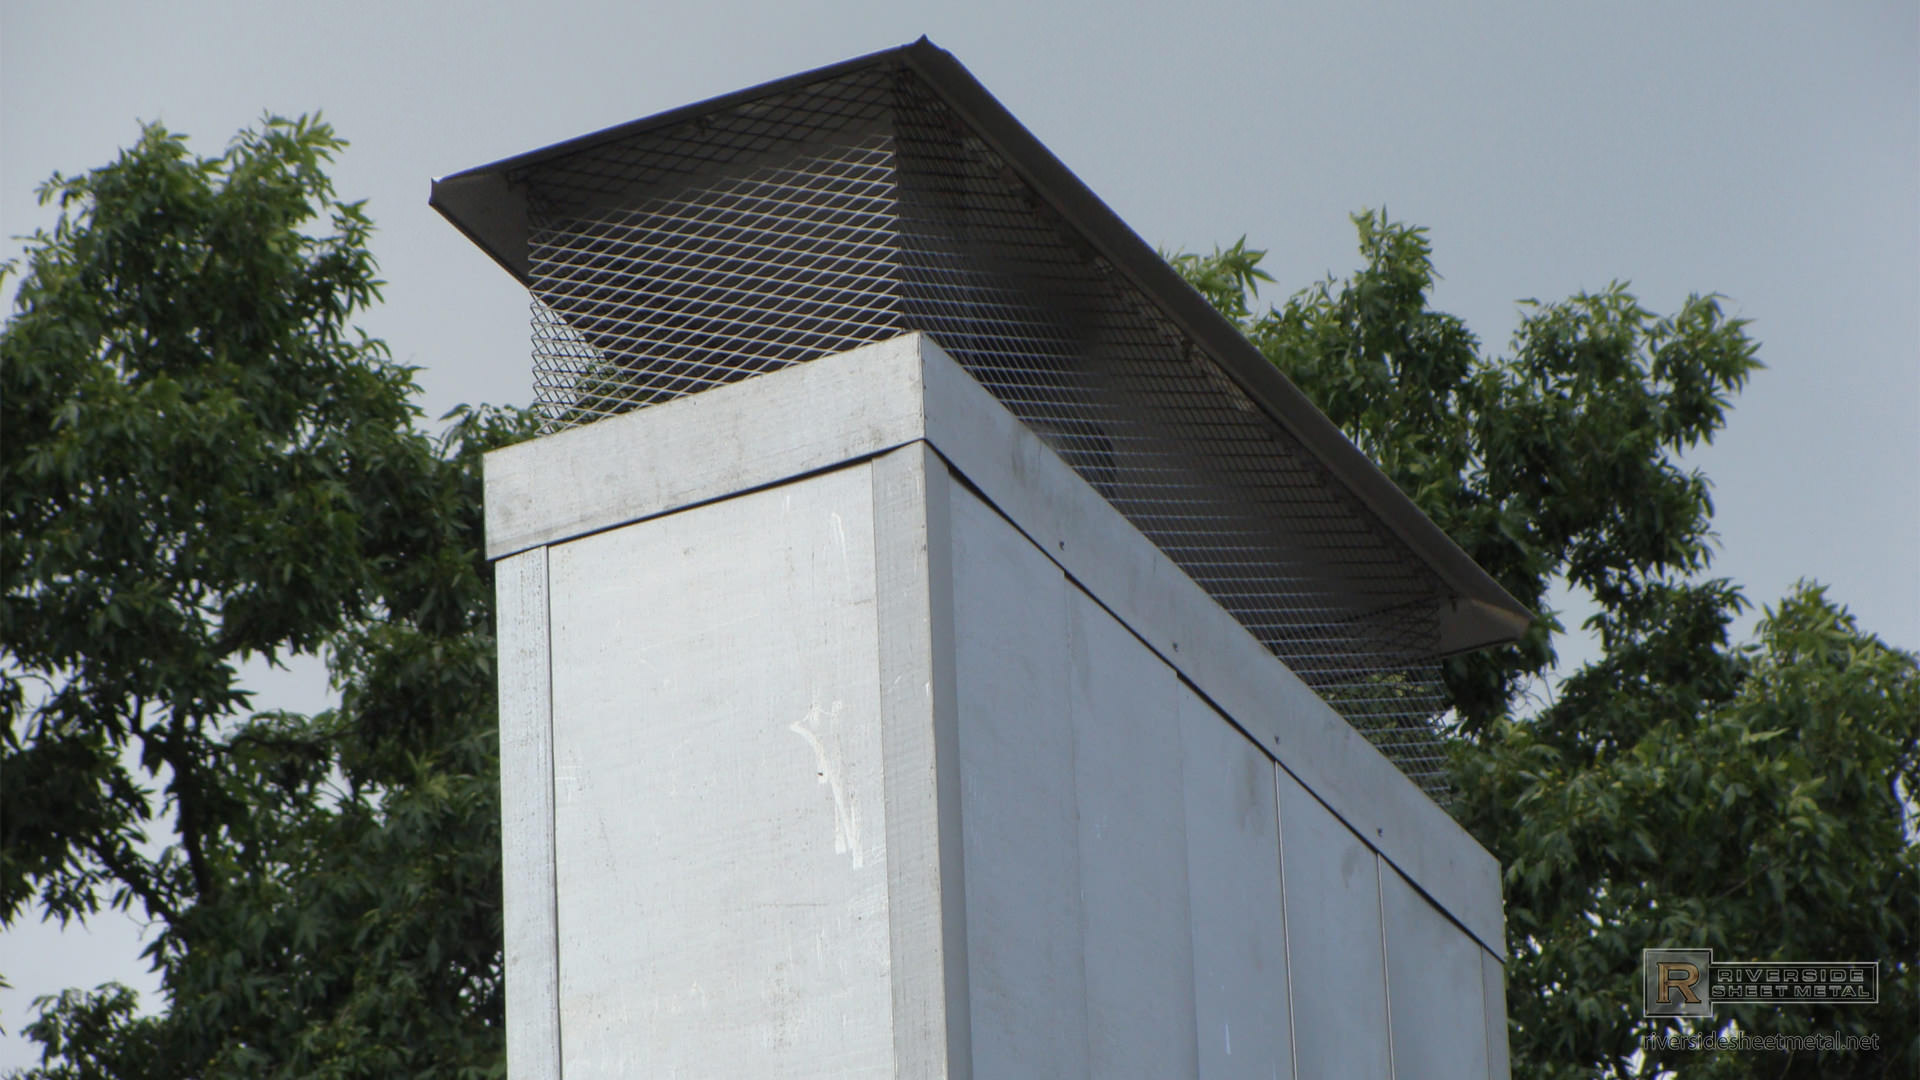 Standard Stainless Steel Chimney Cap With Crimped Roof